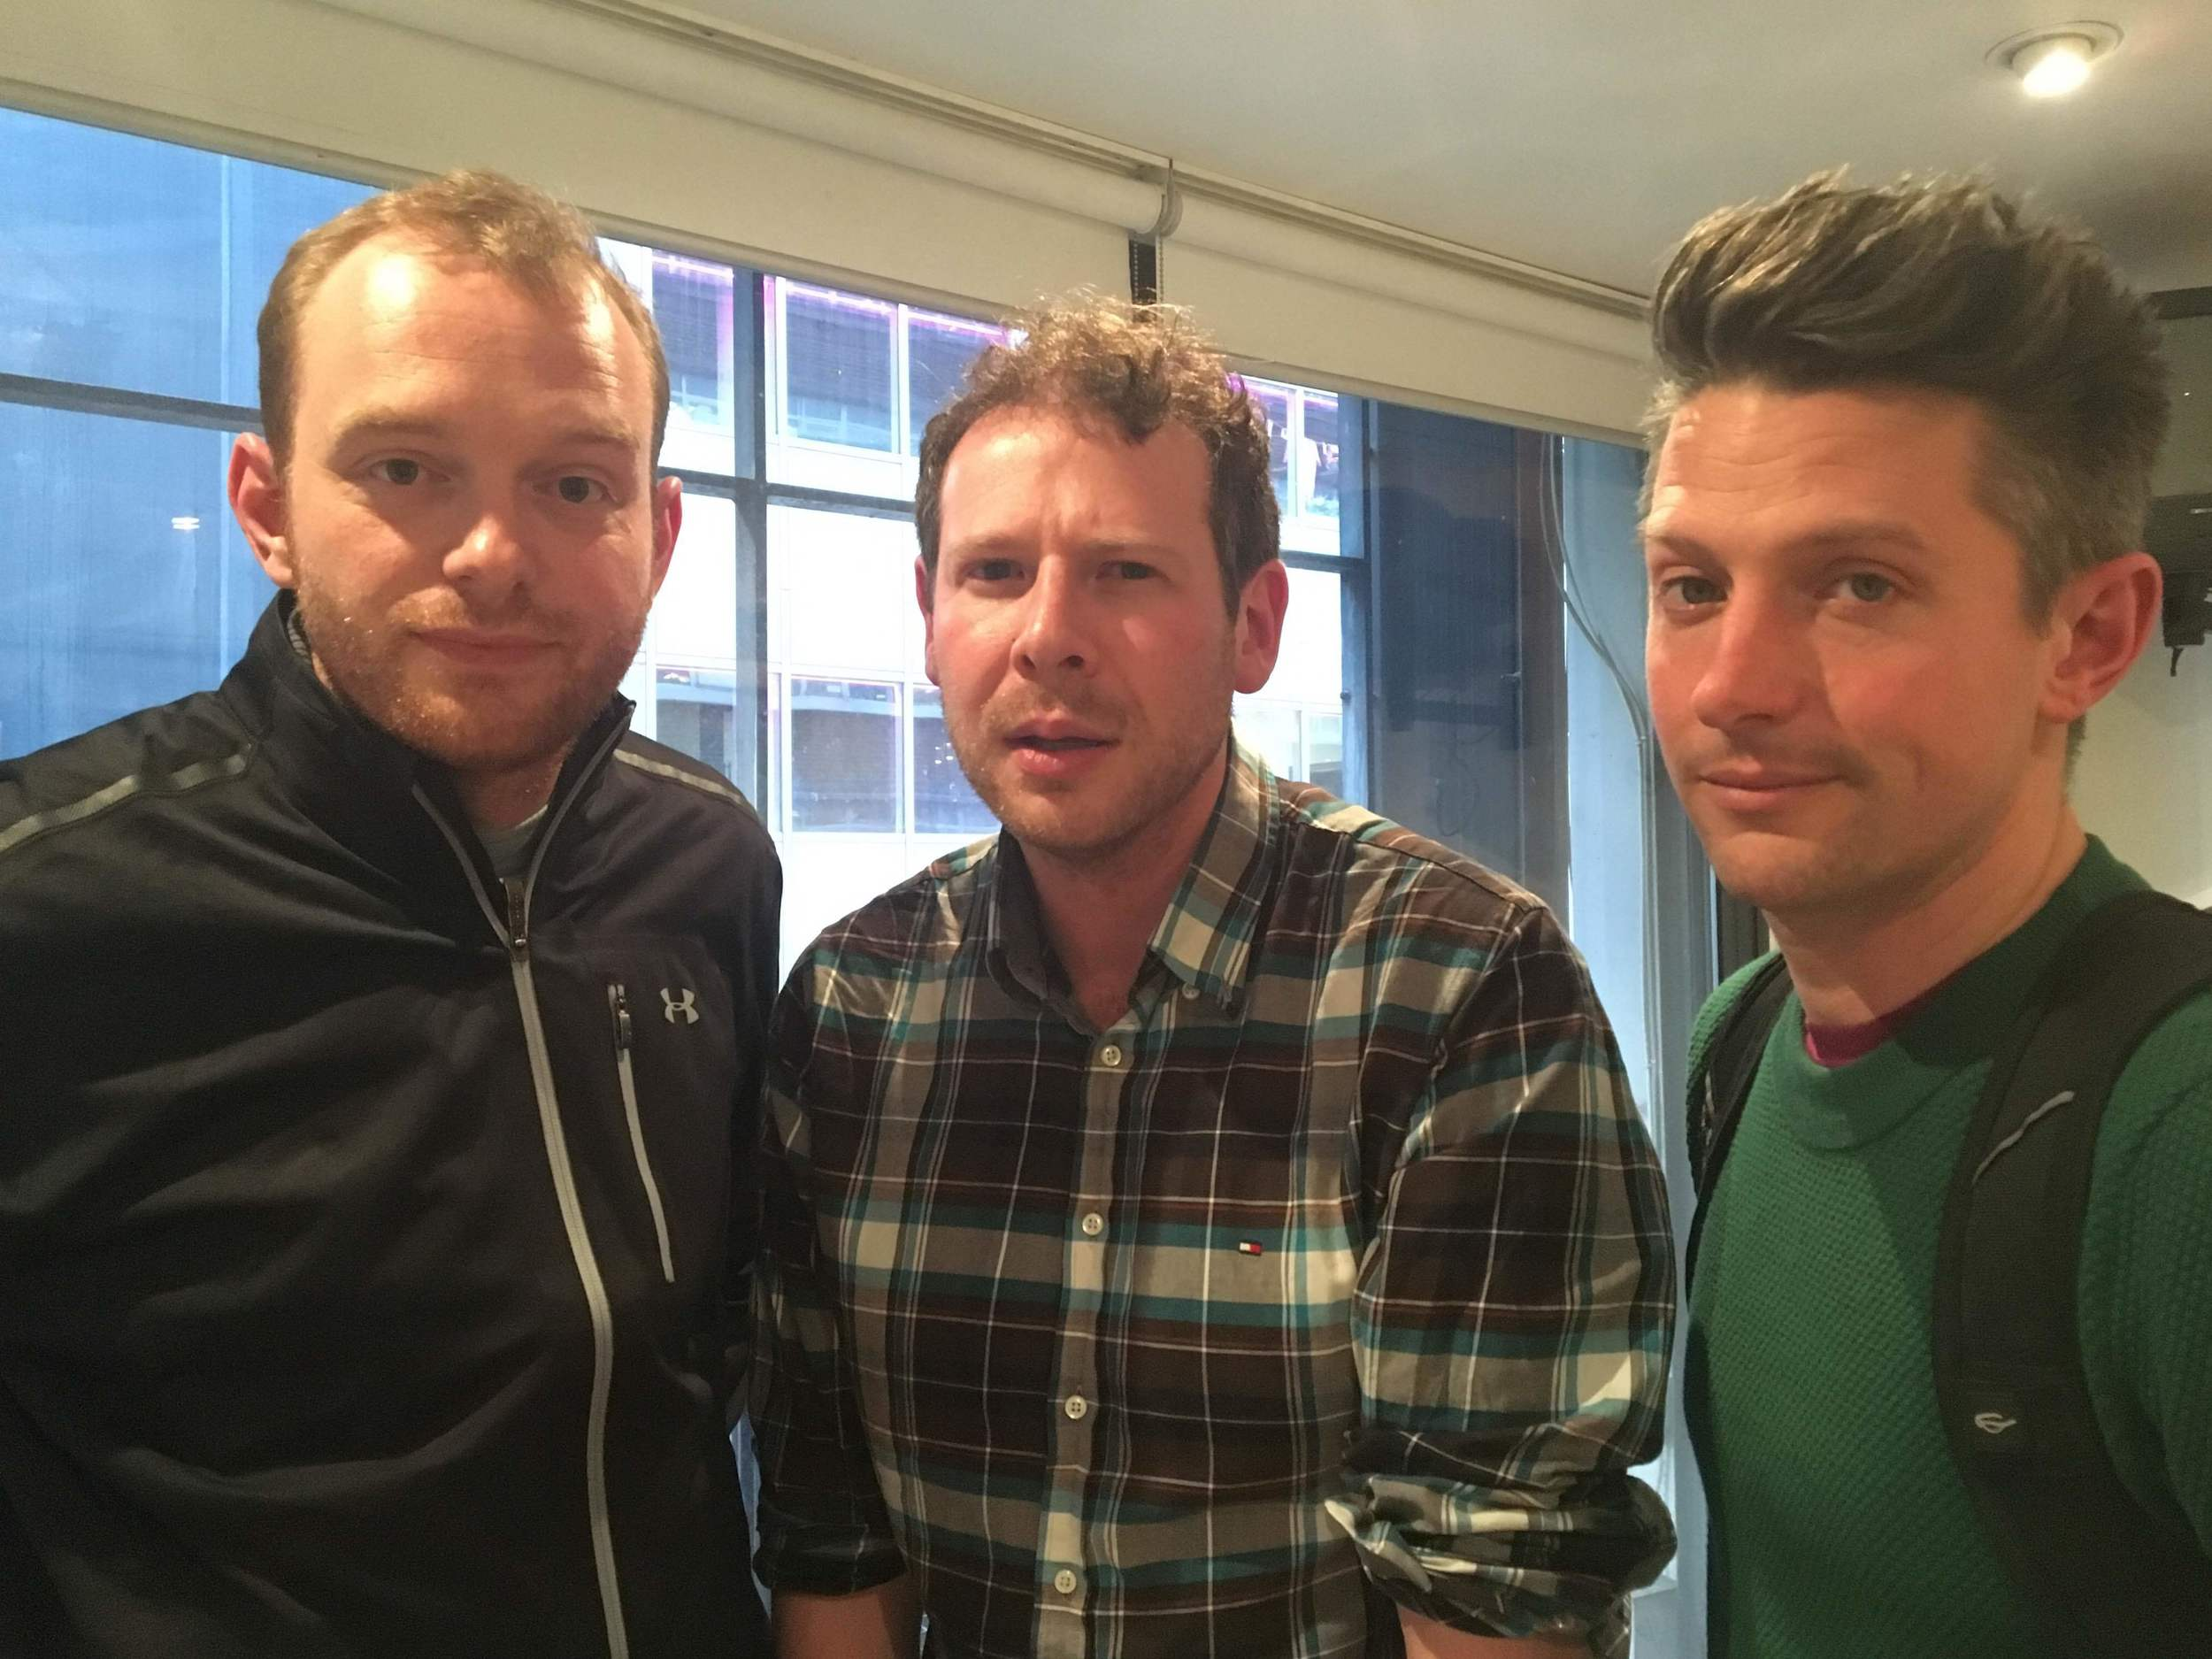 Price, Mann, Goldsmith: this is what three tired men look like